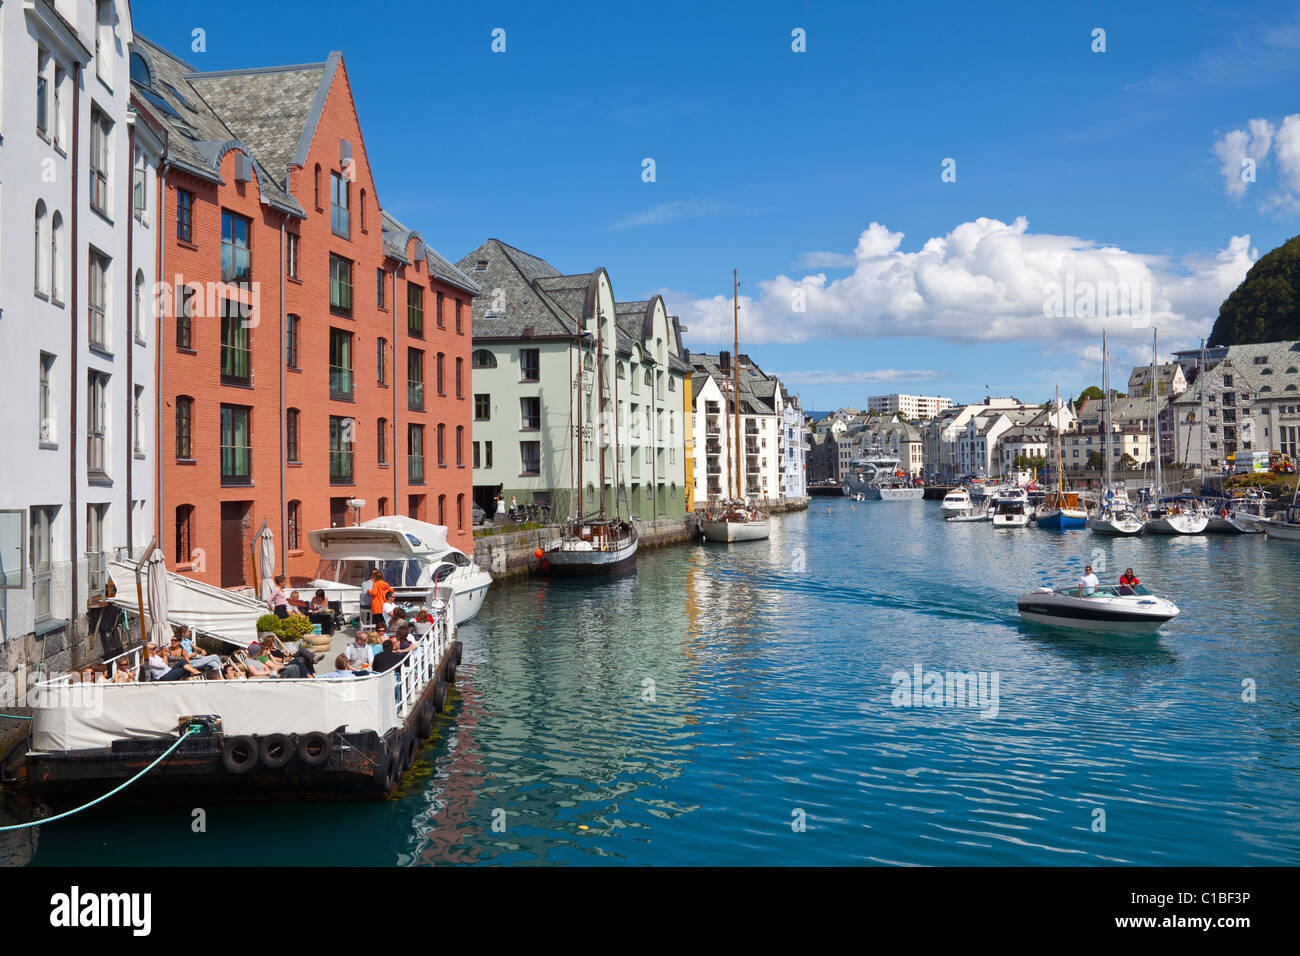 Floating cafe in picturesque harbor, Alesund, Sunnmore, More og Romsdal, Norway - Stock Image